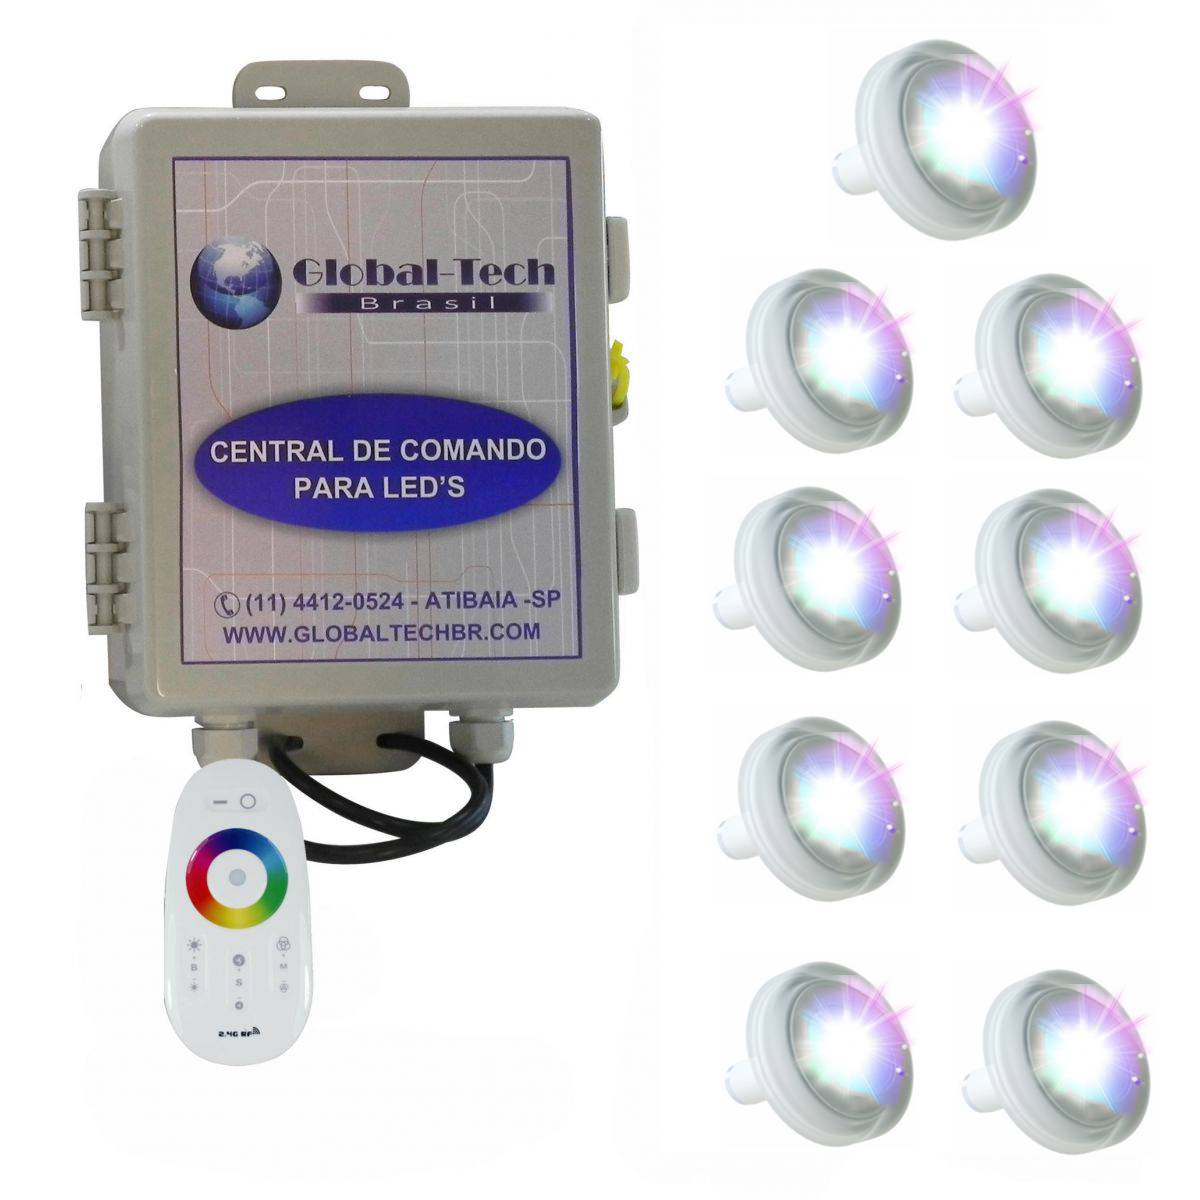 Led Piscina RGB - Kit 9 Led Tholz 4,5W ABS + Central + Controle Touch